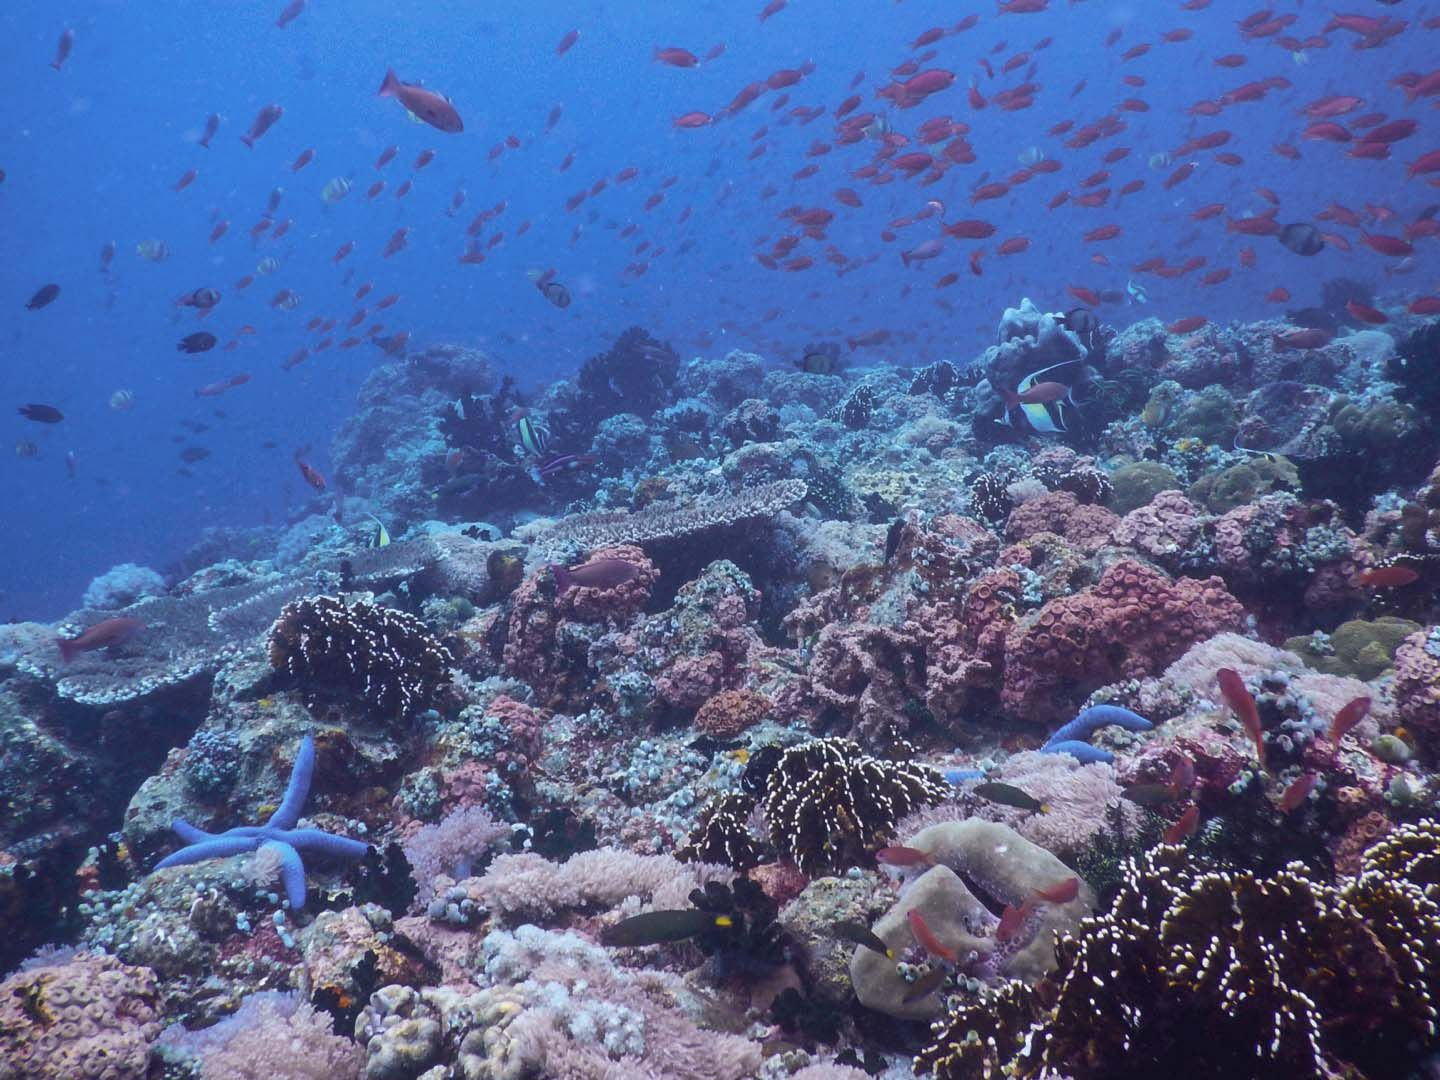 Scuba Diving Experience In Anilao Batangas Philippines Diver Bliss In 2020 Scuba Diving Beach Activities Swimming Activities